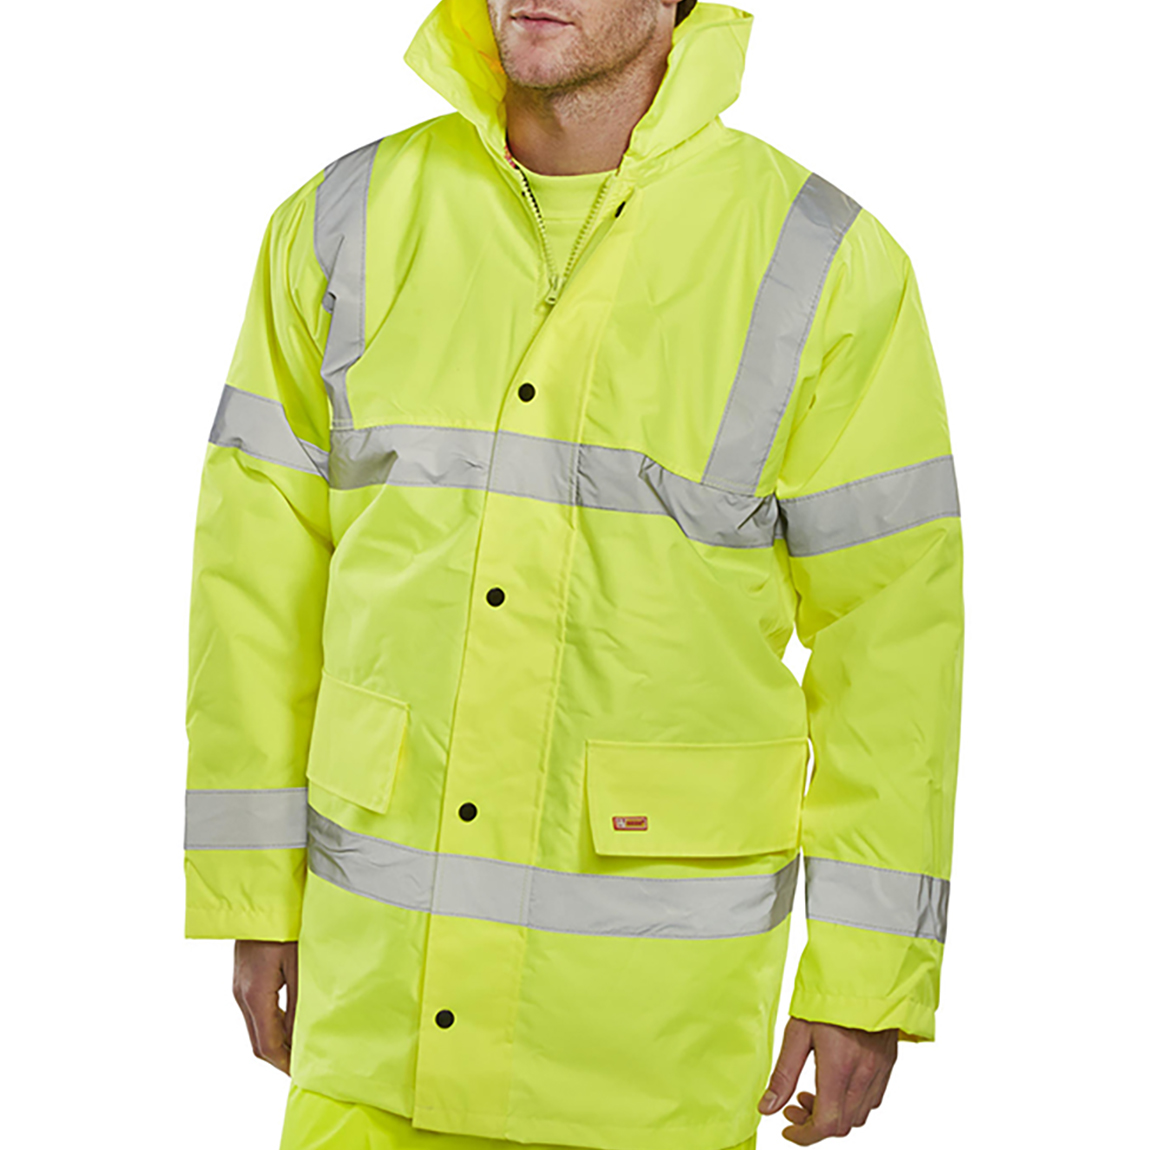 BSeen High Visibility Constructor Jacket Large Saturn Yellow Ref CTJENGSYL *Approx 3 Day Leadtime*